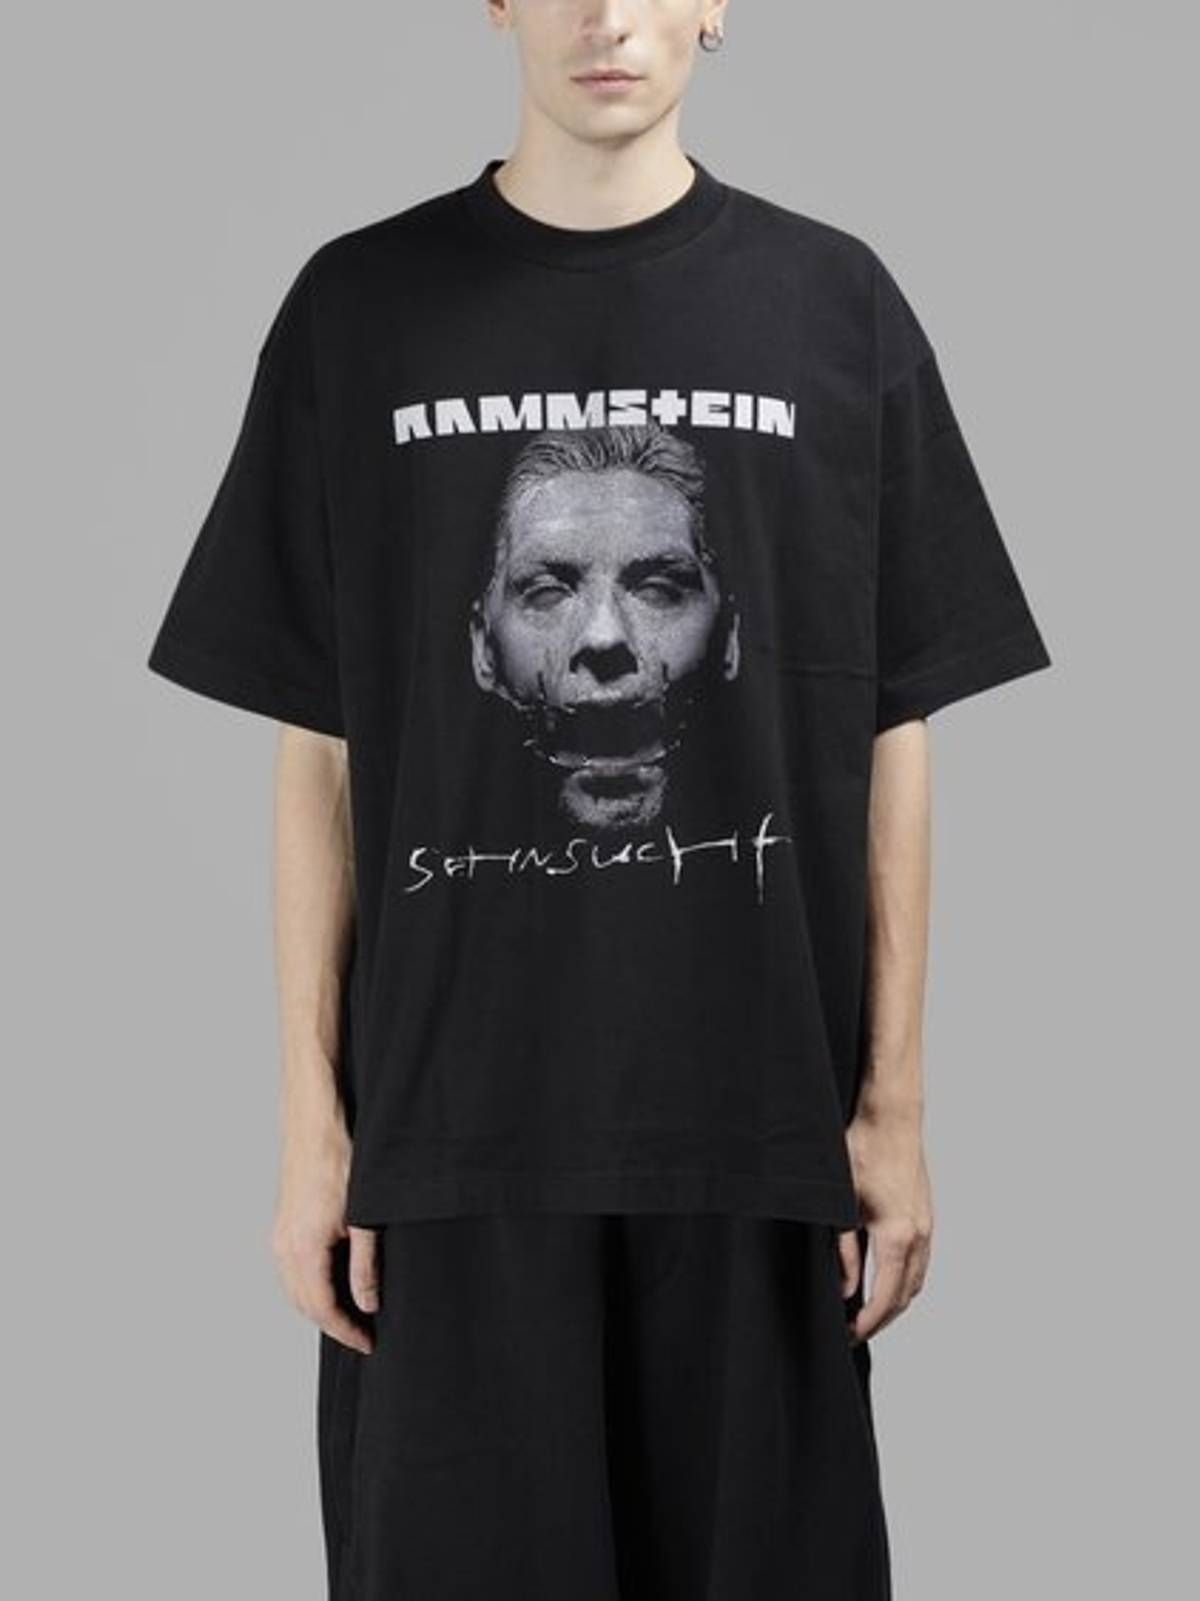 vetements rammstein metal t shirt size m short sleeve t shirts for sale grailed. Black Bedroom Furniture Sets. Home Design Ideas